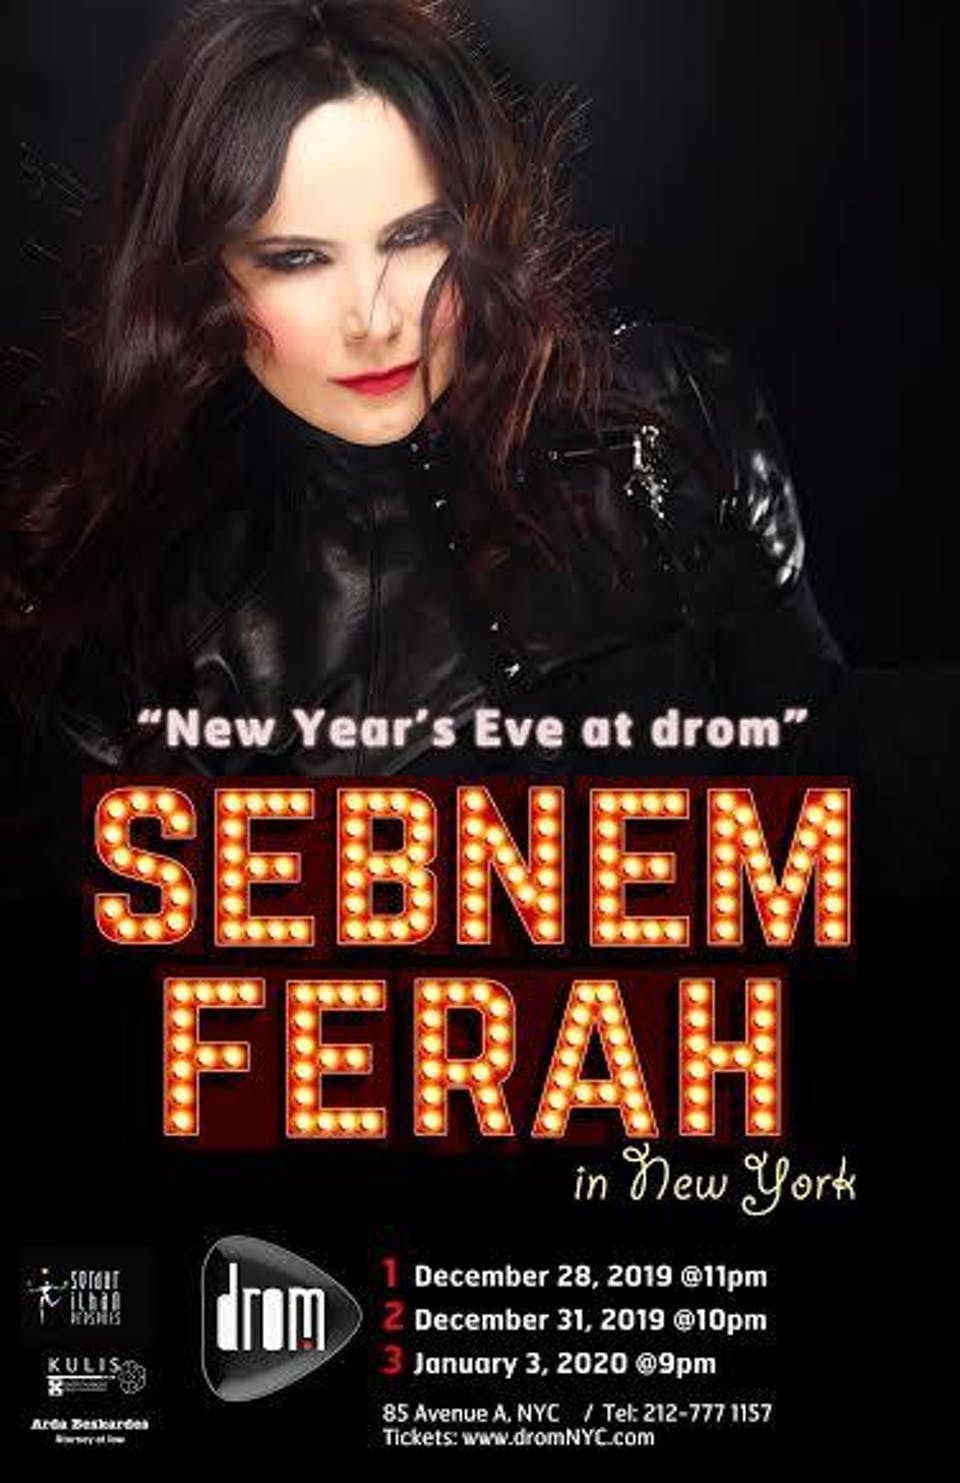 New Year's Eve at DROM with Sebnem Ferah